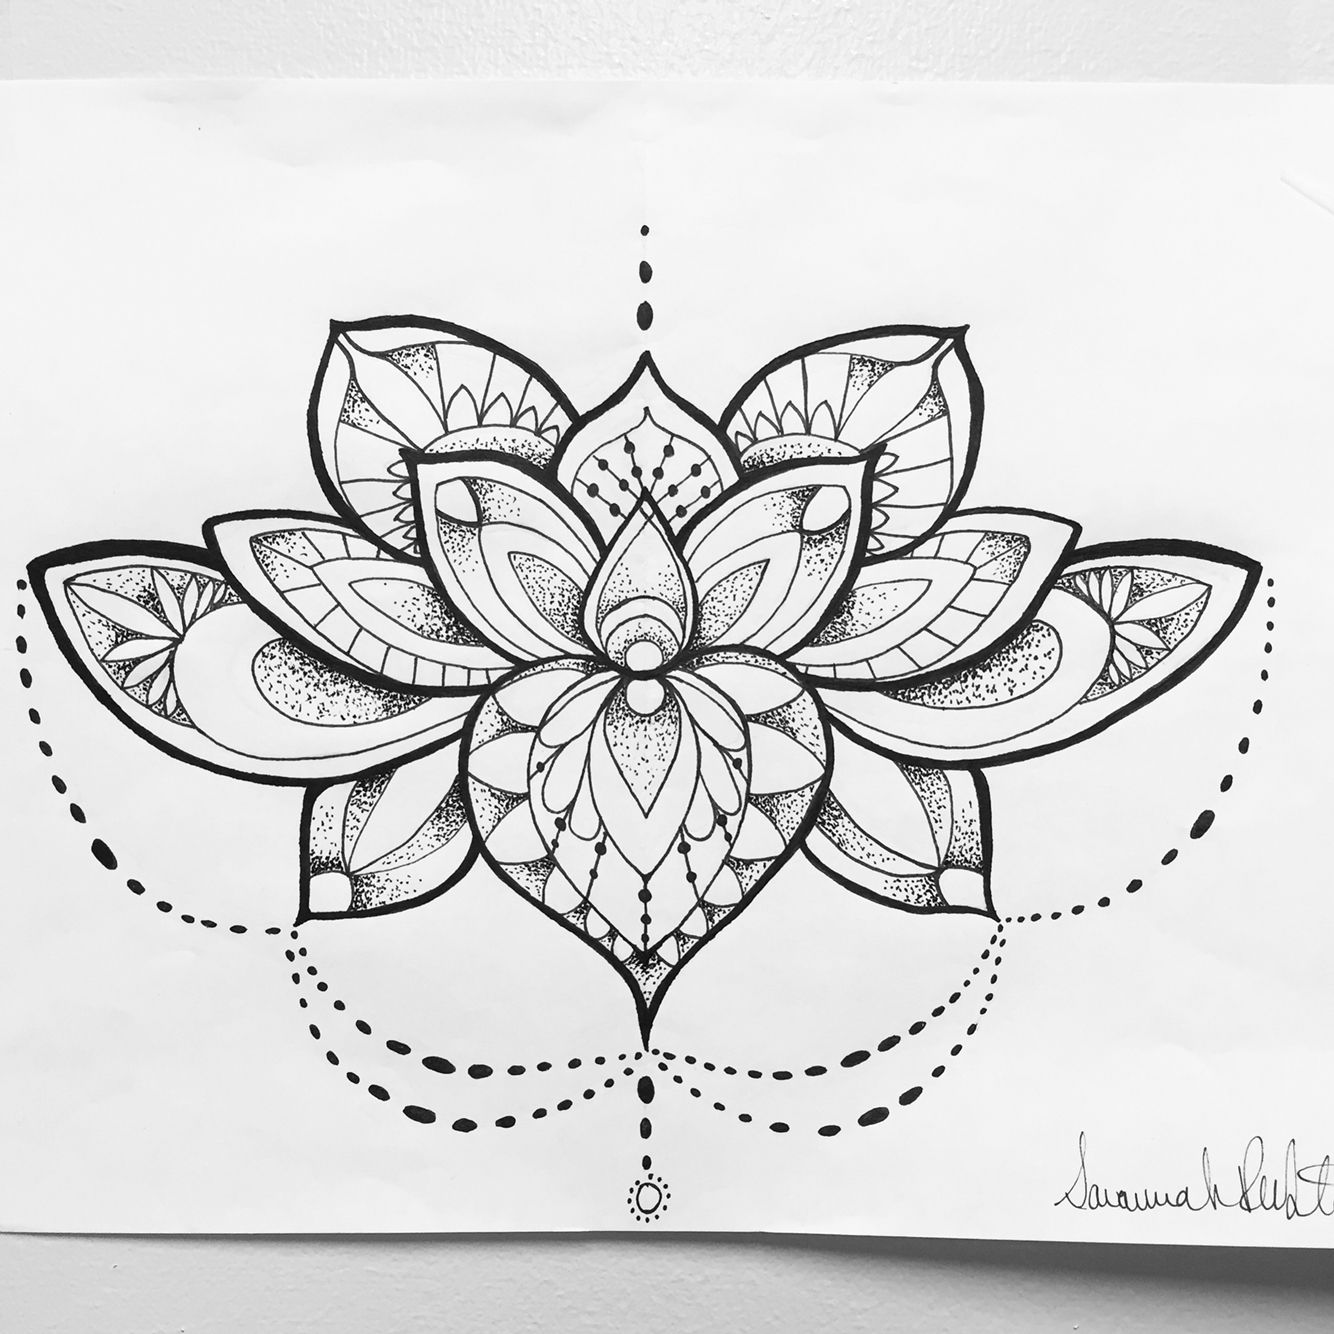 Mandala Lotus Flower Tattoo Concept I Created Black And White Ink Possibly Watercolor Teal Lotus Flower Drawing Lotus Blossom Tattoos Lotus Flower Tattoo